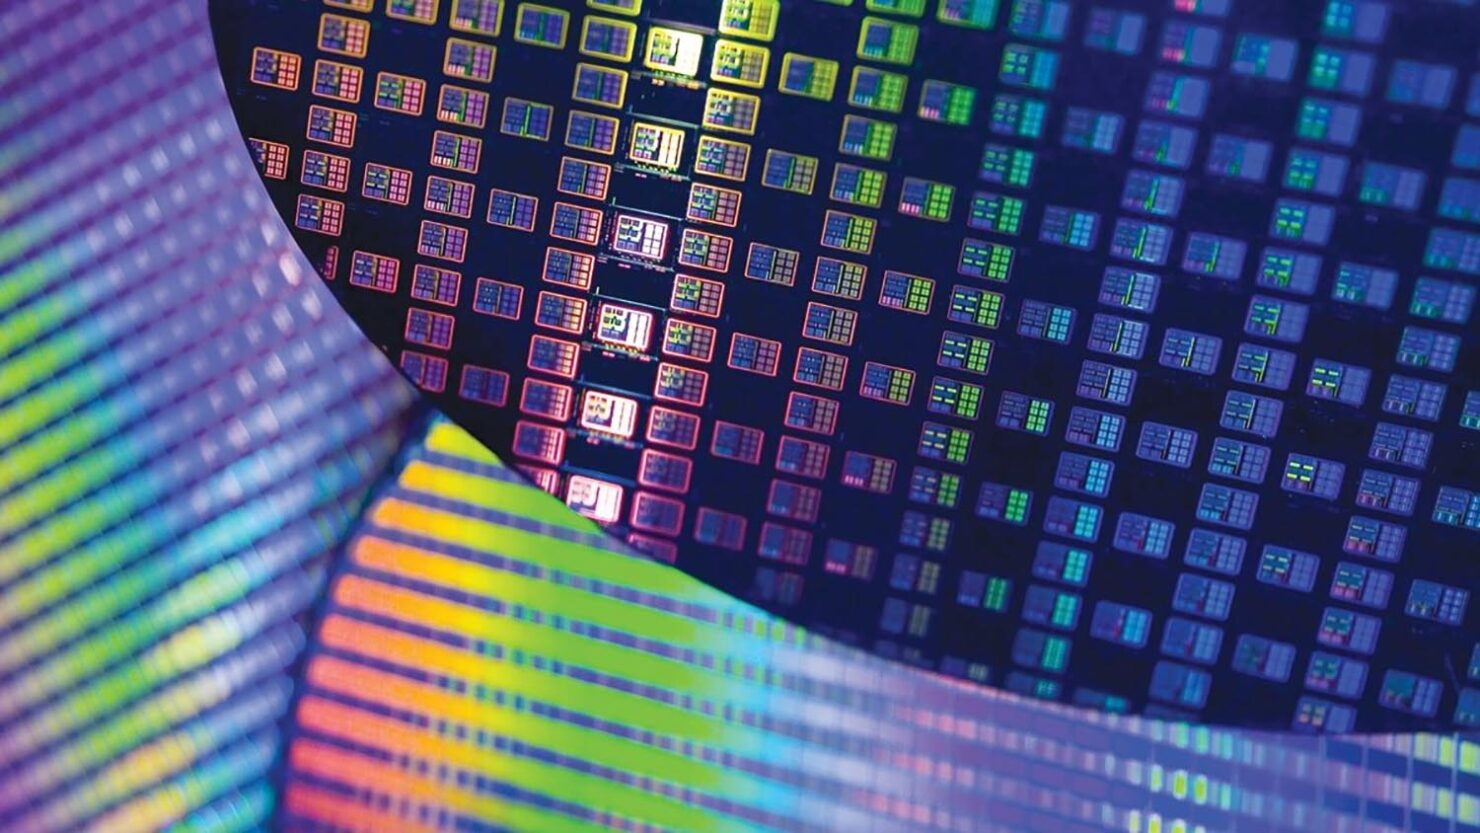 TSMC's 2nm Process Plans Approved; May Be Used to Mass Produce iPhone Chips for 2024